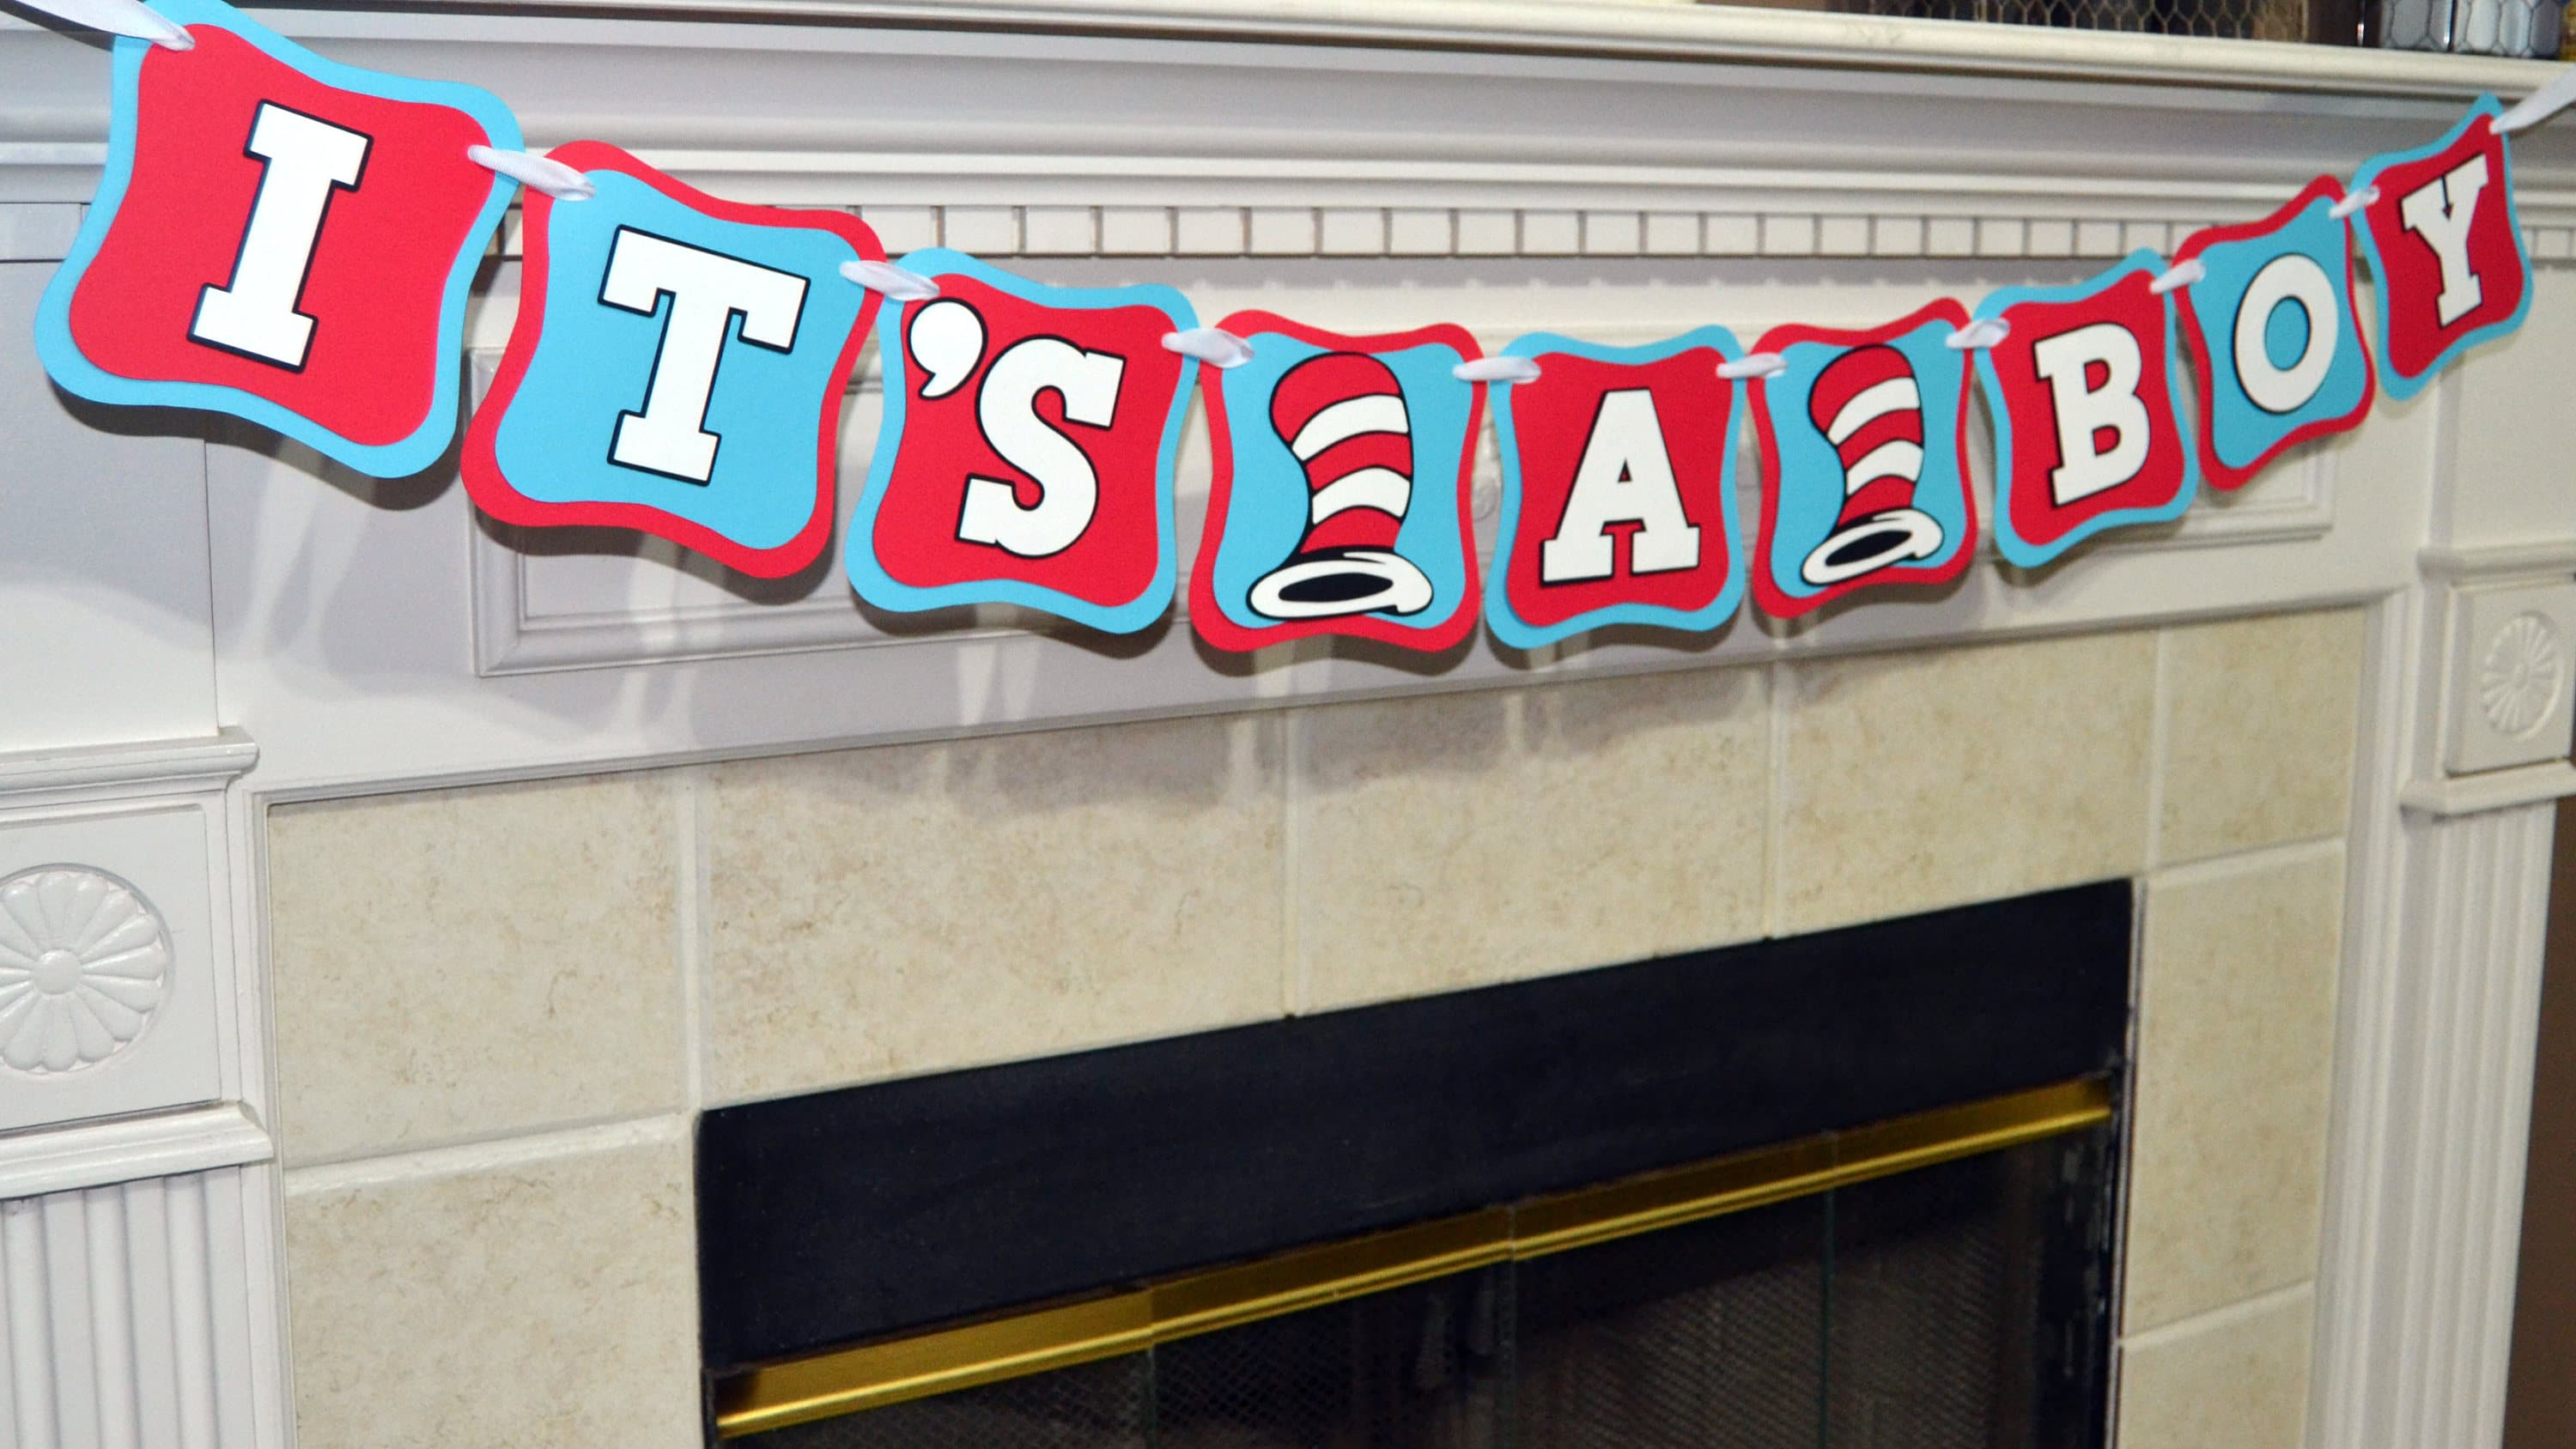 Dr. Seuss Baby Shower Decorations